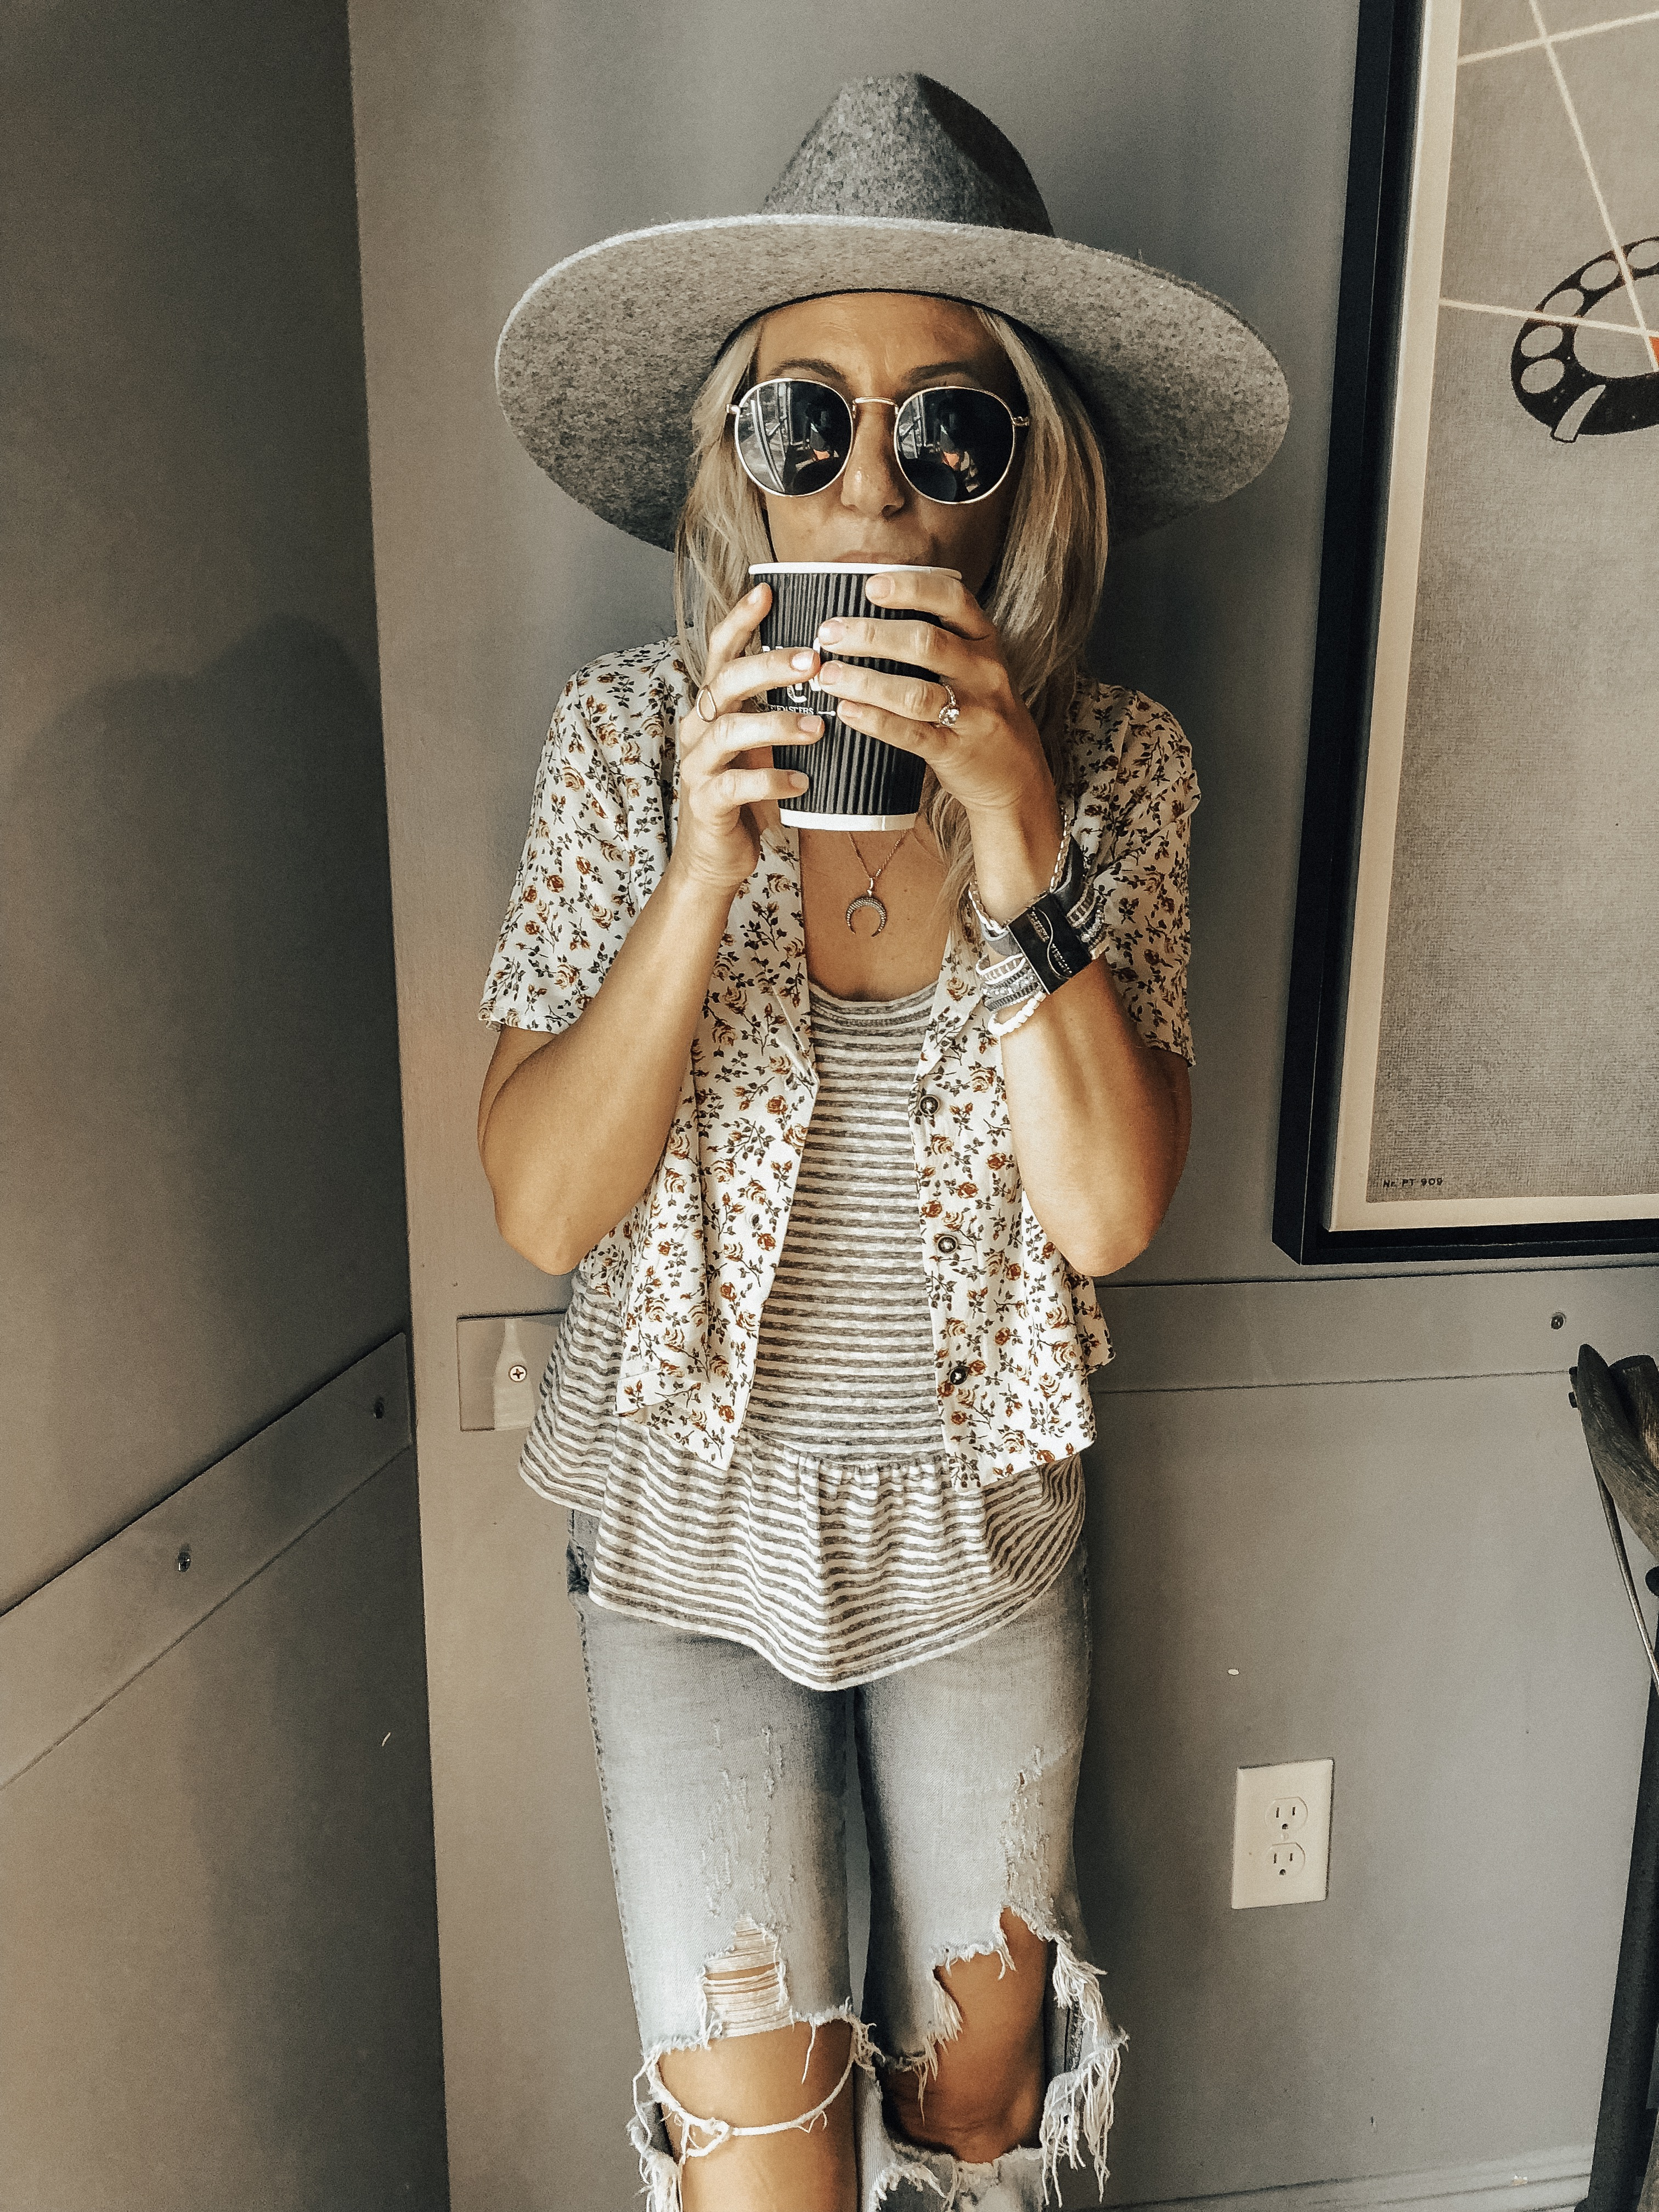 BOHO BRACELETS + VICTORIA EMERSON- Jaclyn De Leon Style + bohemian style + bracelet stack + jewelry trends + how to style accessories + summer outfit + fall style + mom style + grey fedora hat + coffee shop + stying tips + distressed denim + peplum top + floral button up